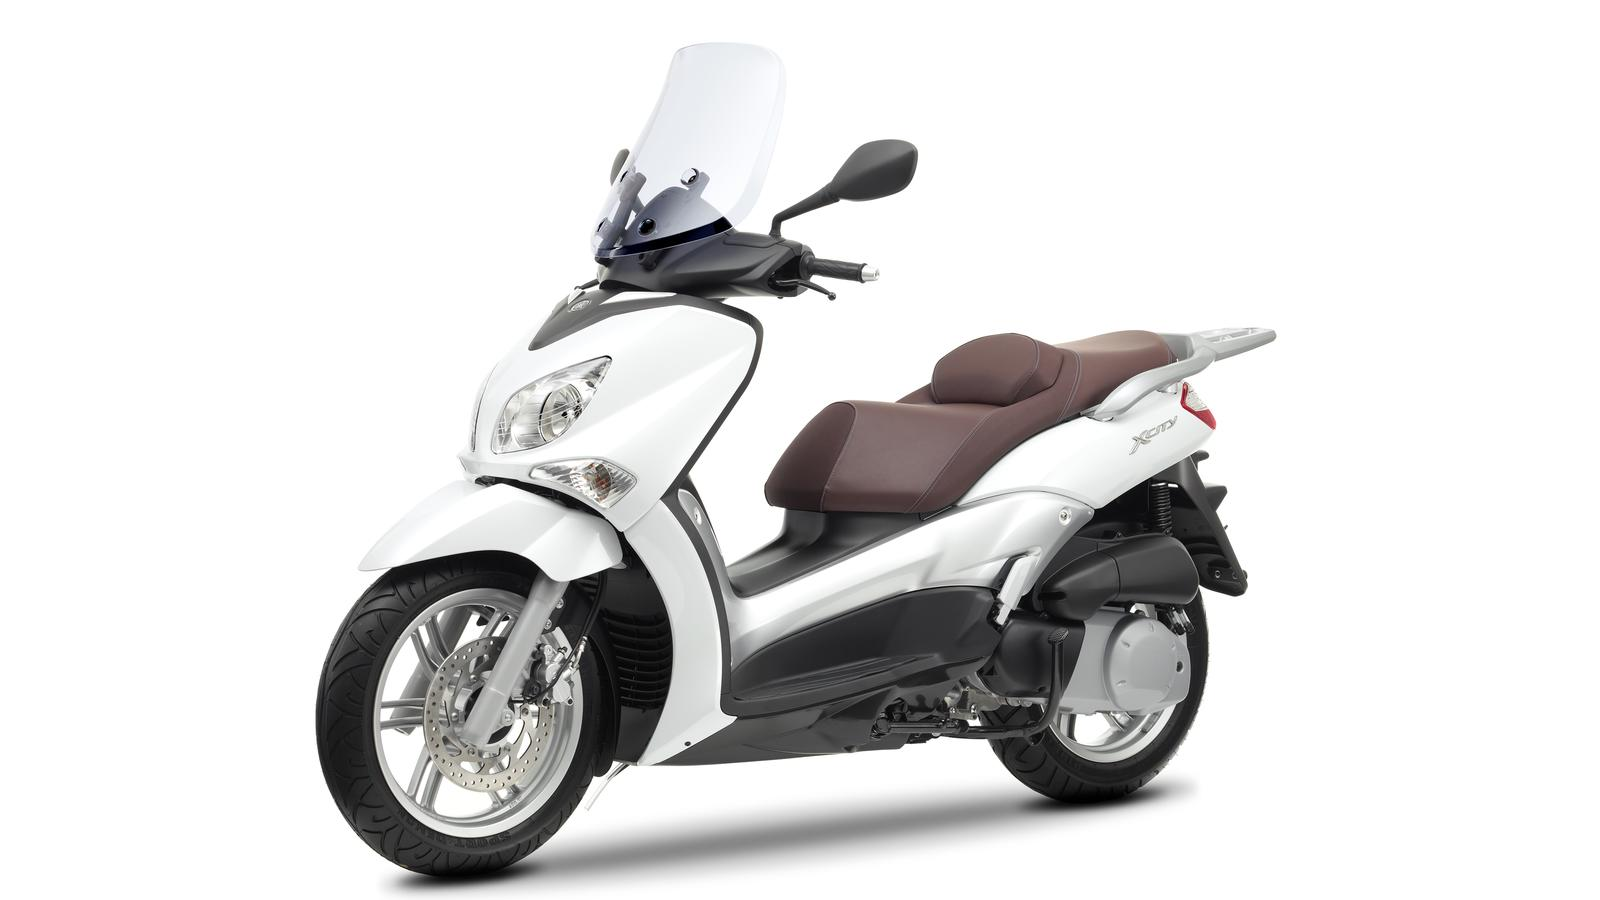 2012 yamaha x city 250 gallery 459246 top speed. Black Bedroom Furniture Sets. Home Design Ideas